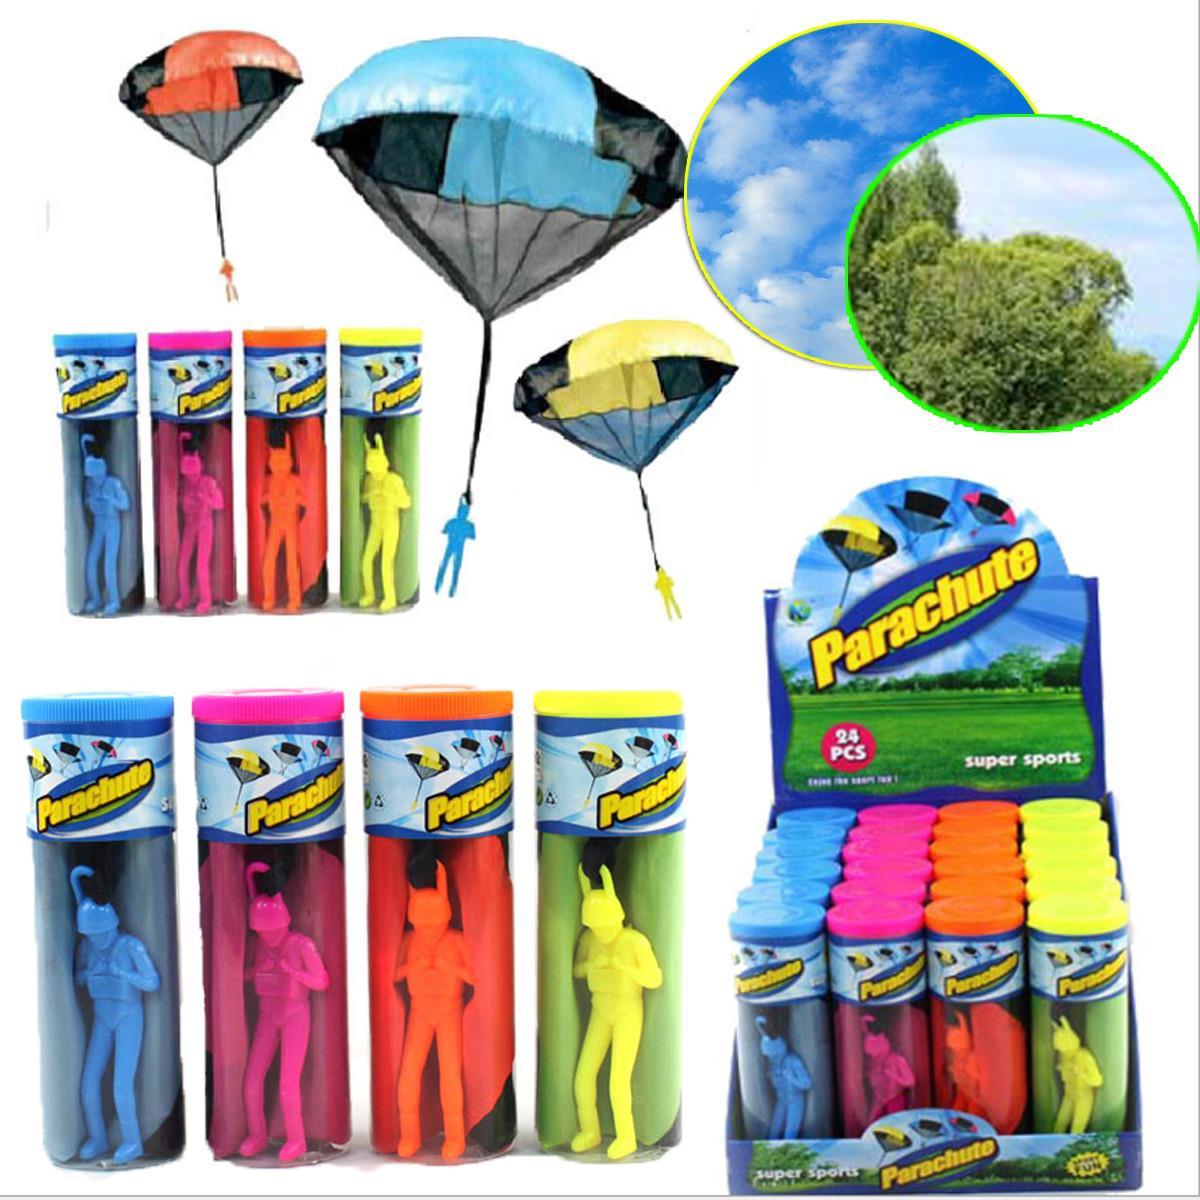 1 Pcs Tangle Free Fly Doll Hand Throwing Parachute Kite Outdoor Play Game Education Toy Interest Best Gift Children Kid Favorite